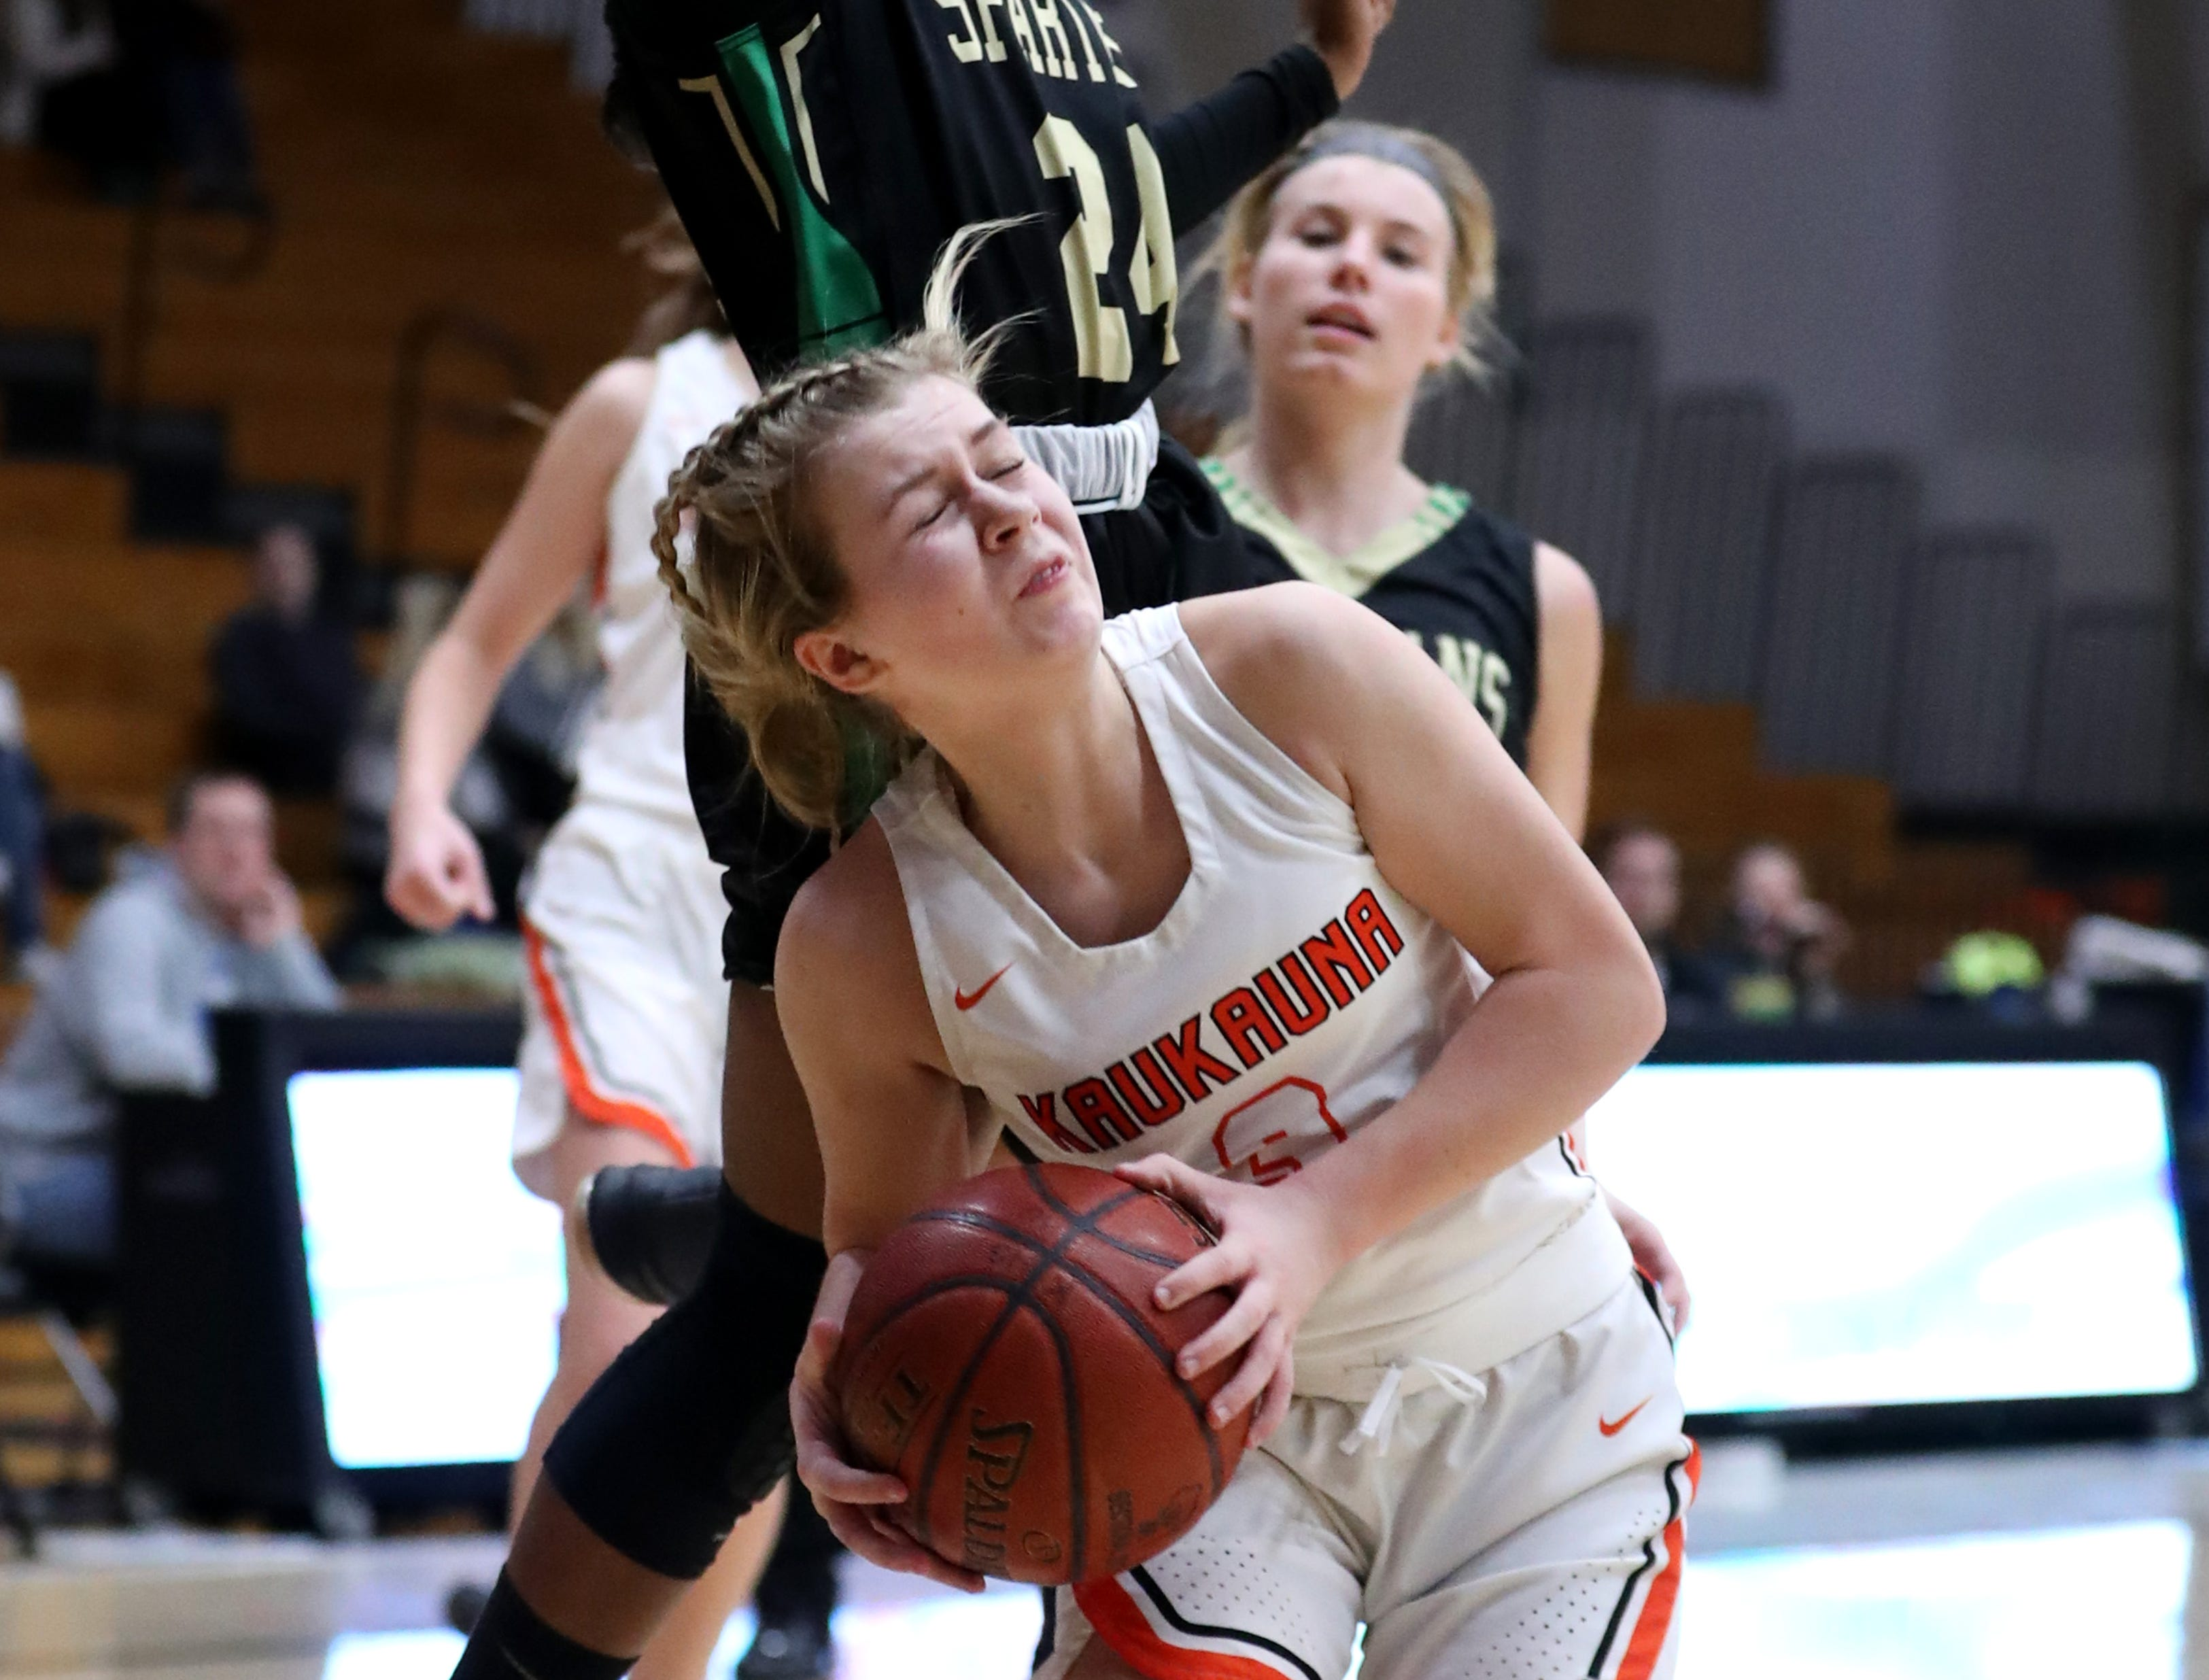 Oshkosh North High SchoolÕs Nydia Griffin fouls Kaukauna High School's Khloe Hinkens Tuesday, Feb. 5, 2019, in Kaukauna, Wis. Oshkosh North defeated Kaukauna High School 77-51.